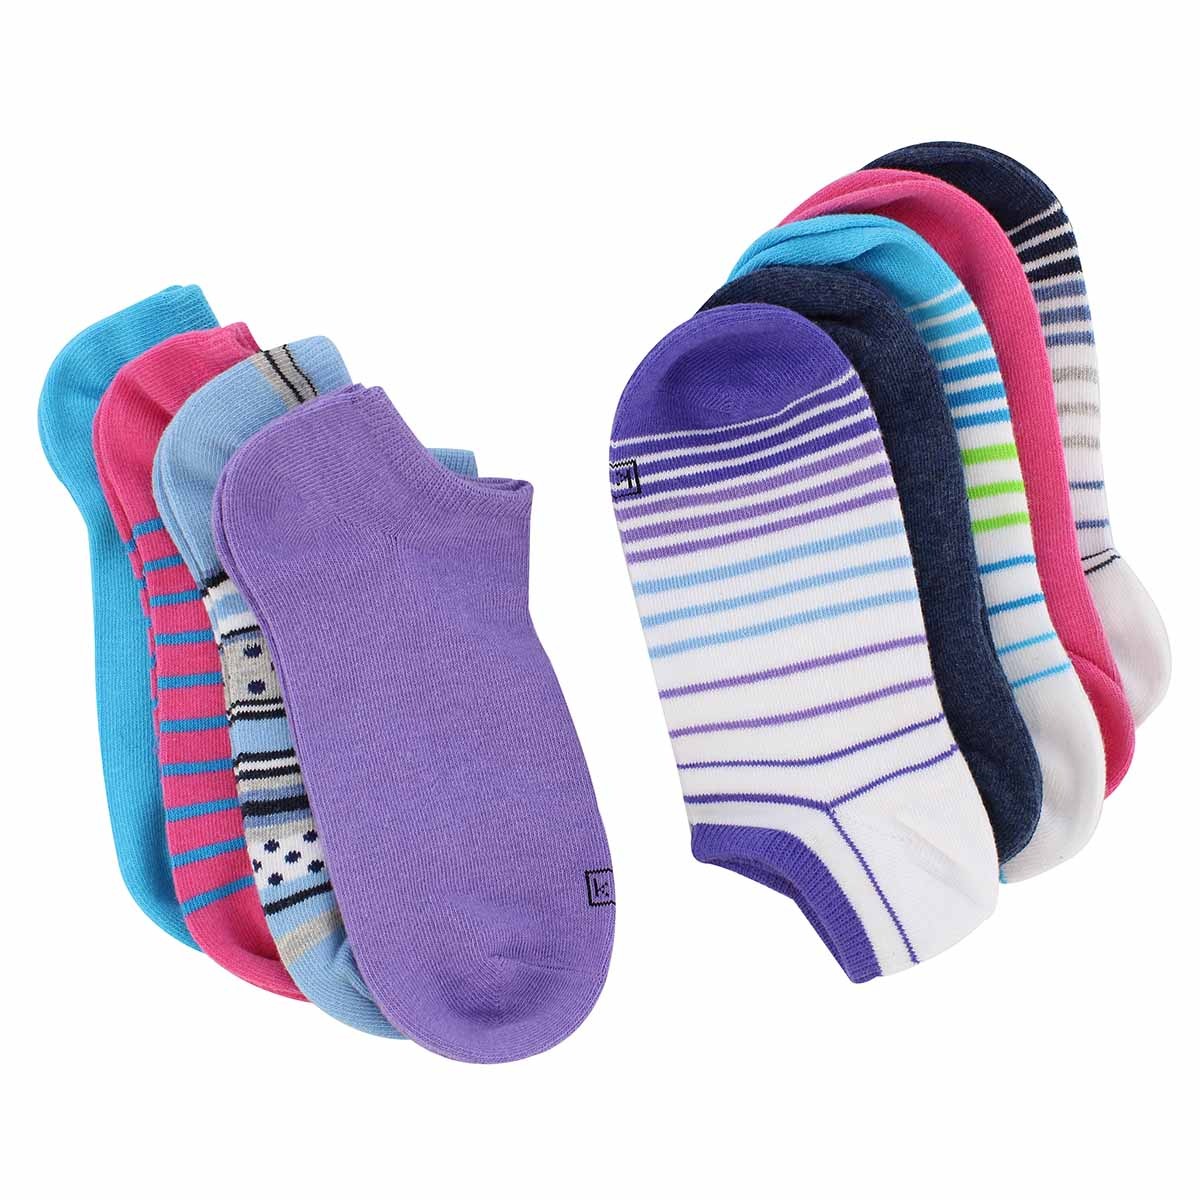 Lds Solid/Stripes multi ankle sock- 9 pk